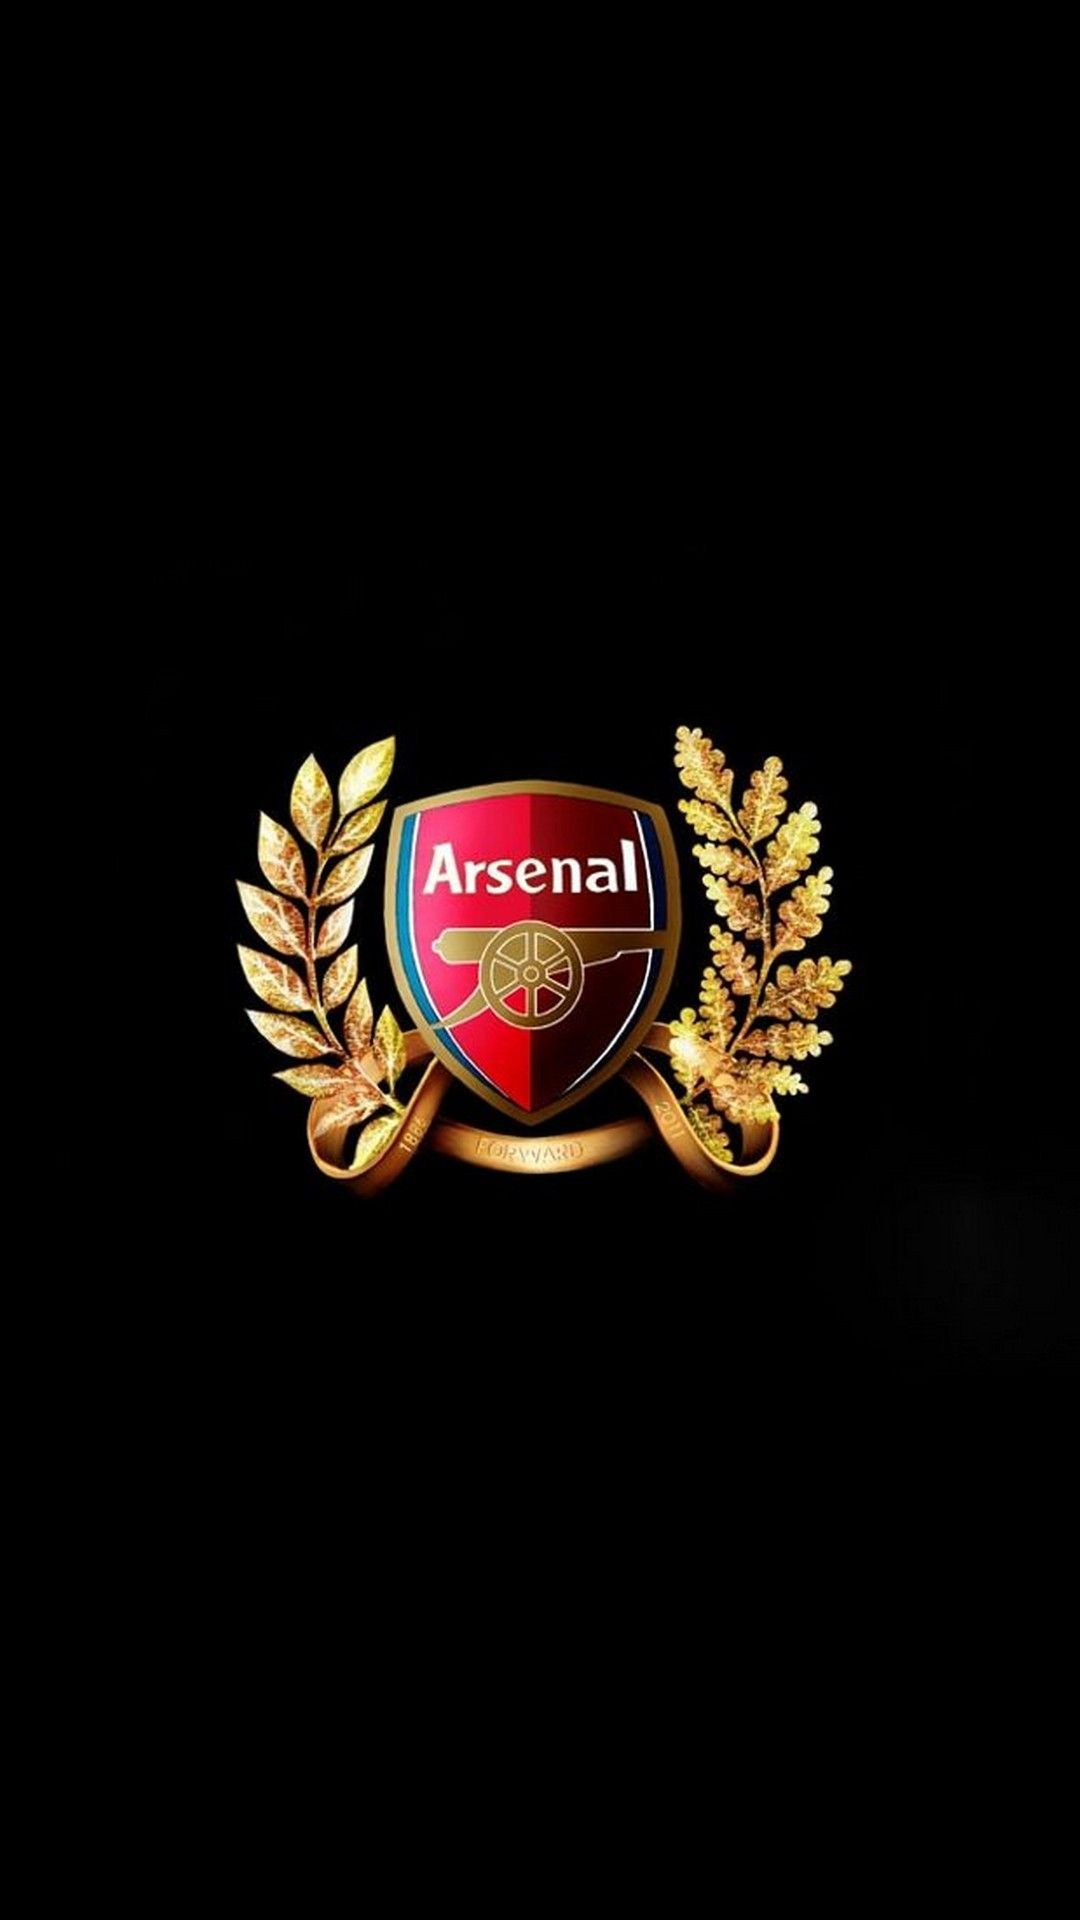 Arsenal Logo Wallpaper Android   2019 Android Wallpapers 1080x1920